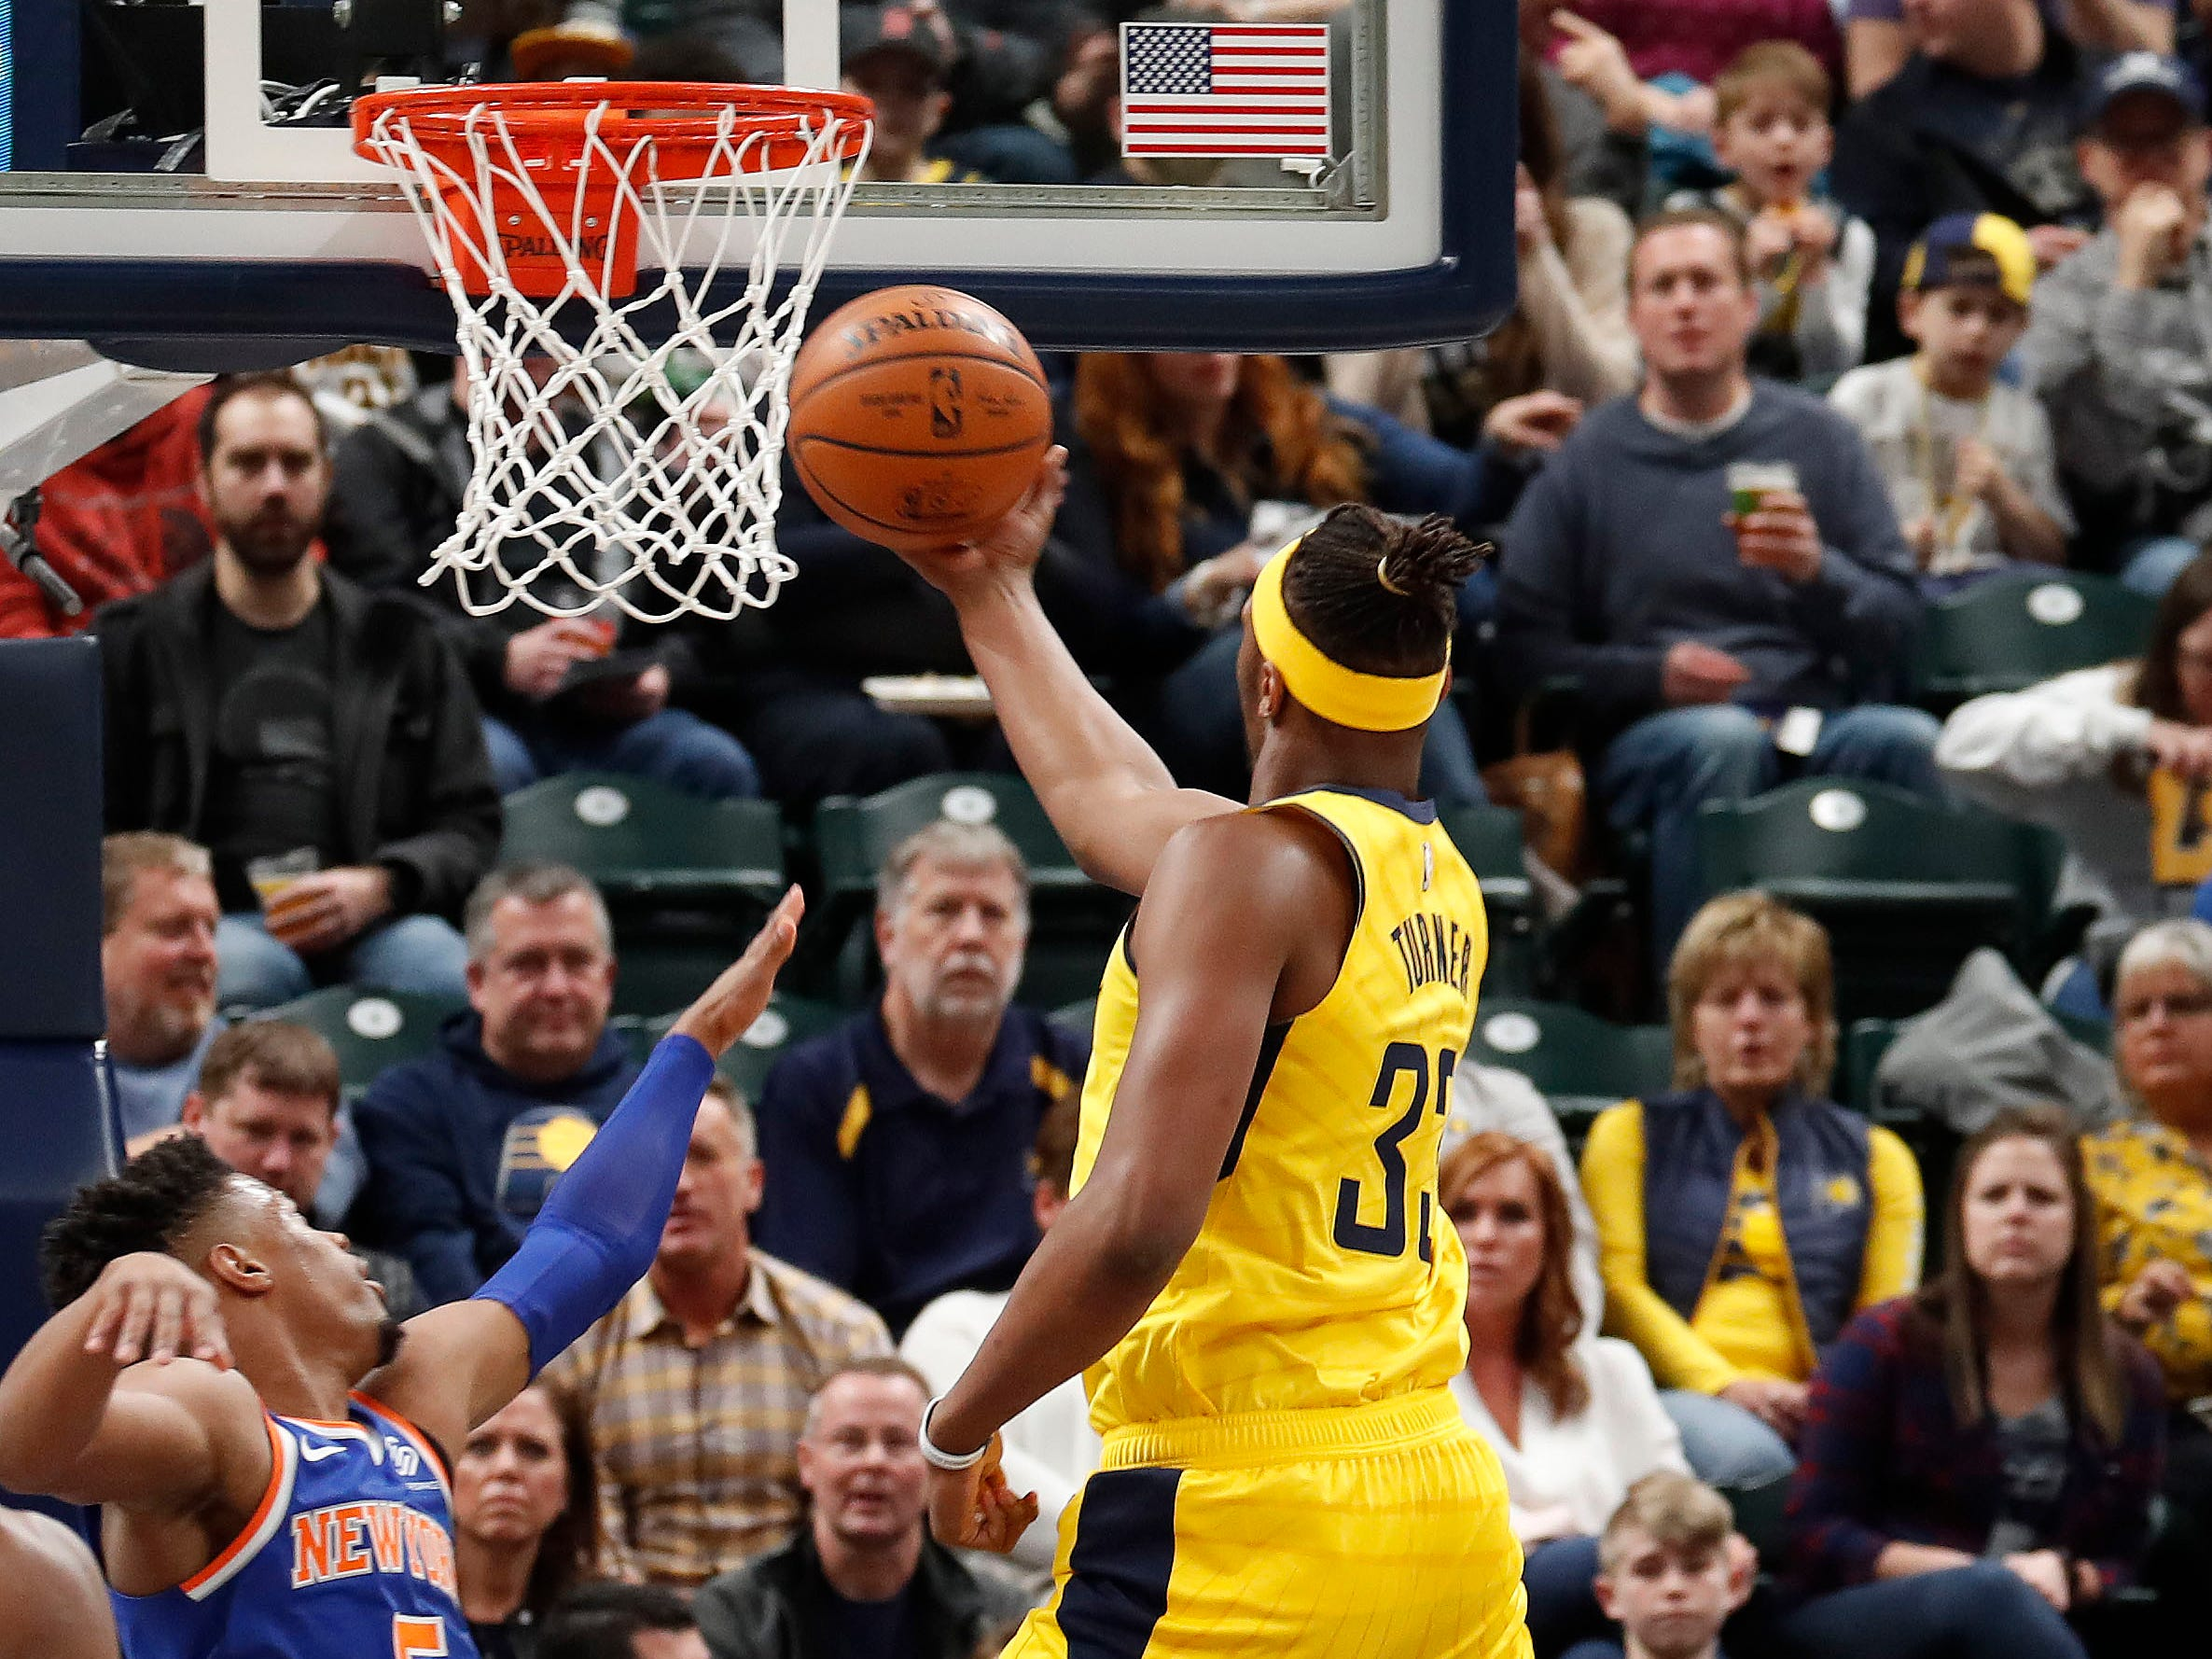 Mar 12, 2019; Indianapolis, IN, USA; Indiana Pacers center Myles Turner (33) takes a shot against New York Knicks guard Dennis Smith Jr. (5) during the first quarter at Bankers Life Fieldhouse.